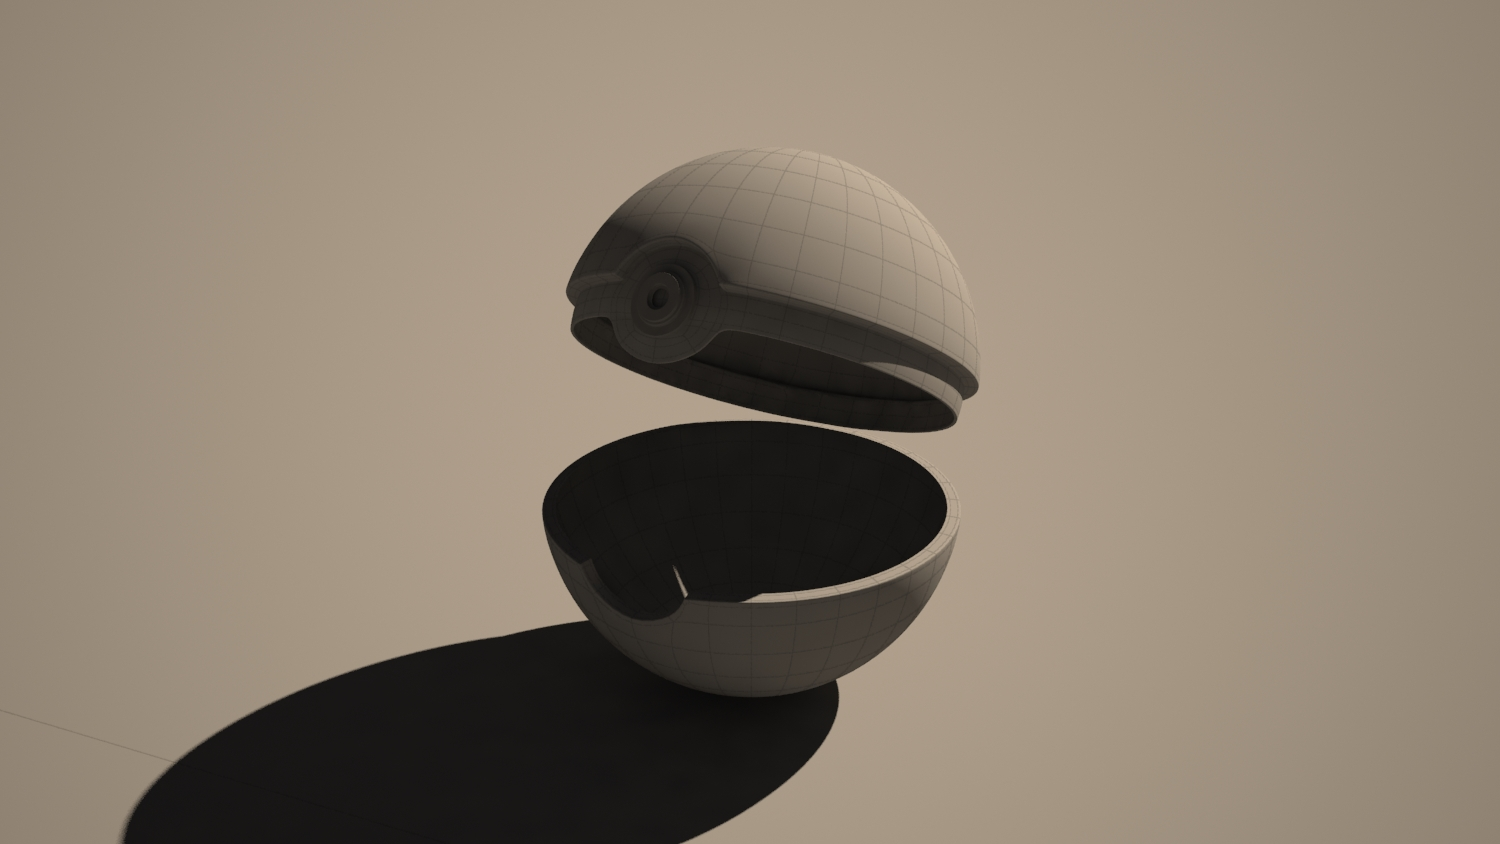 Pokeball modelling 3D